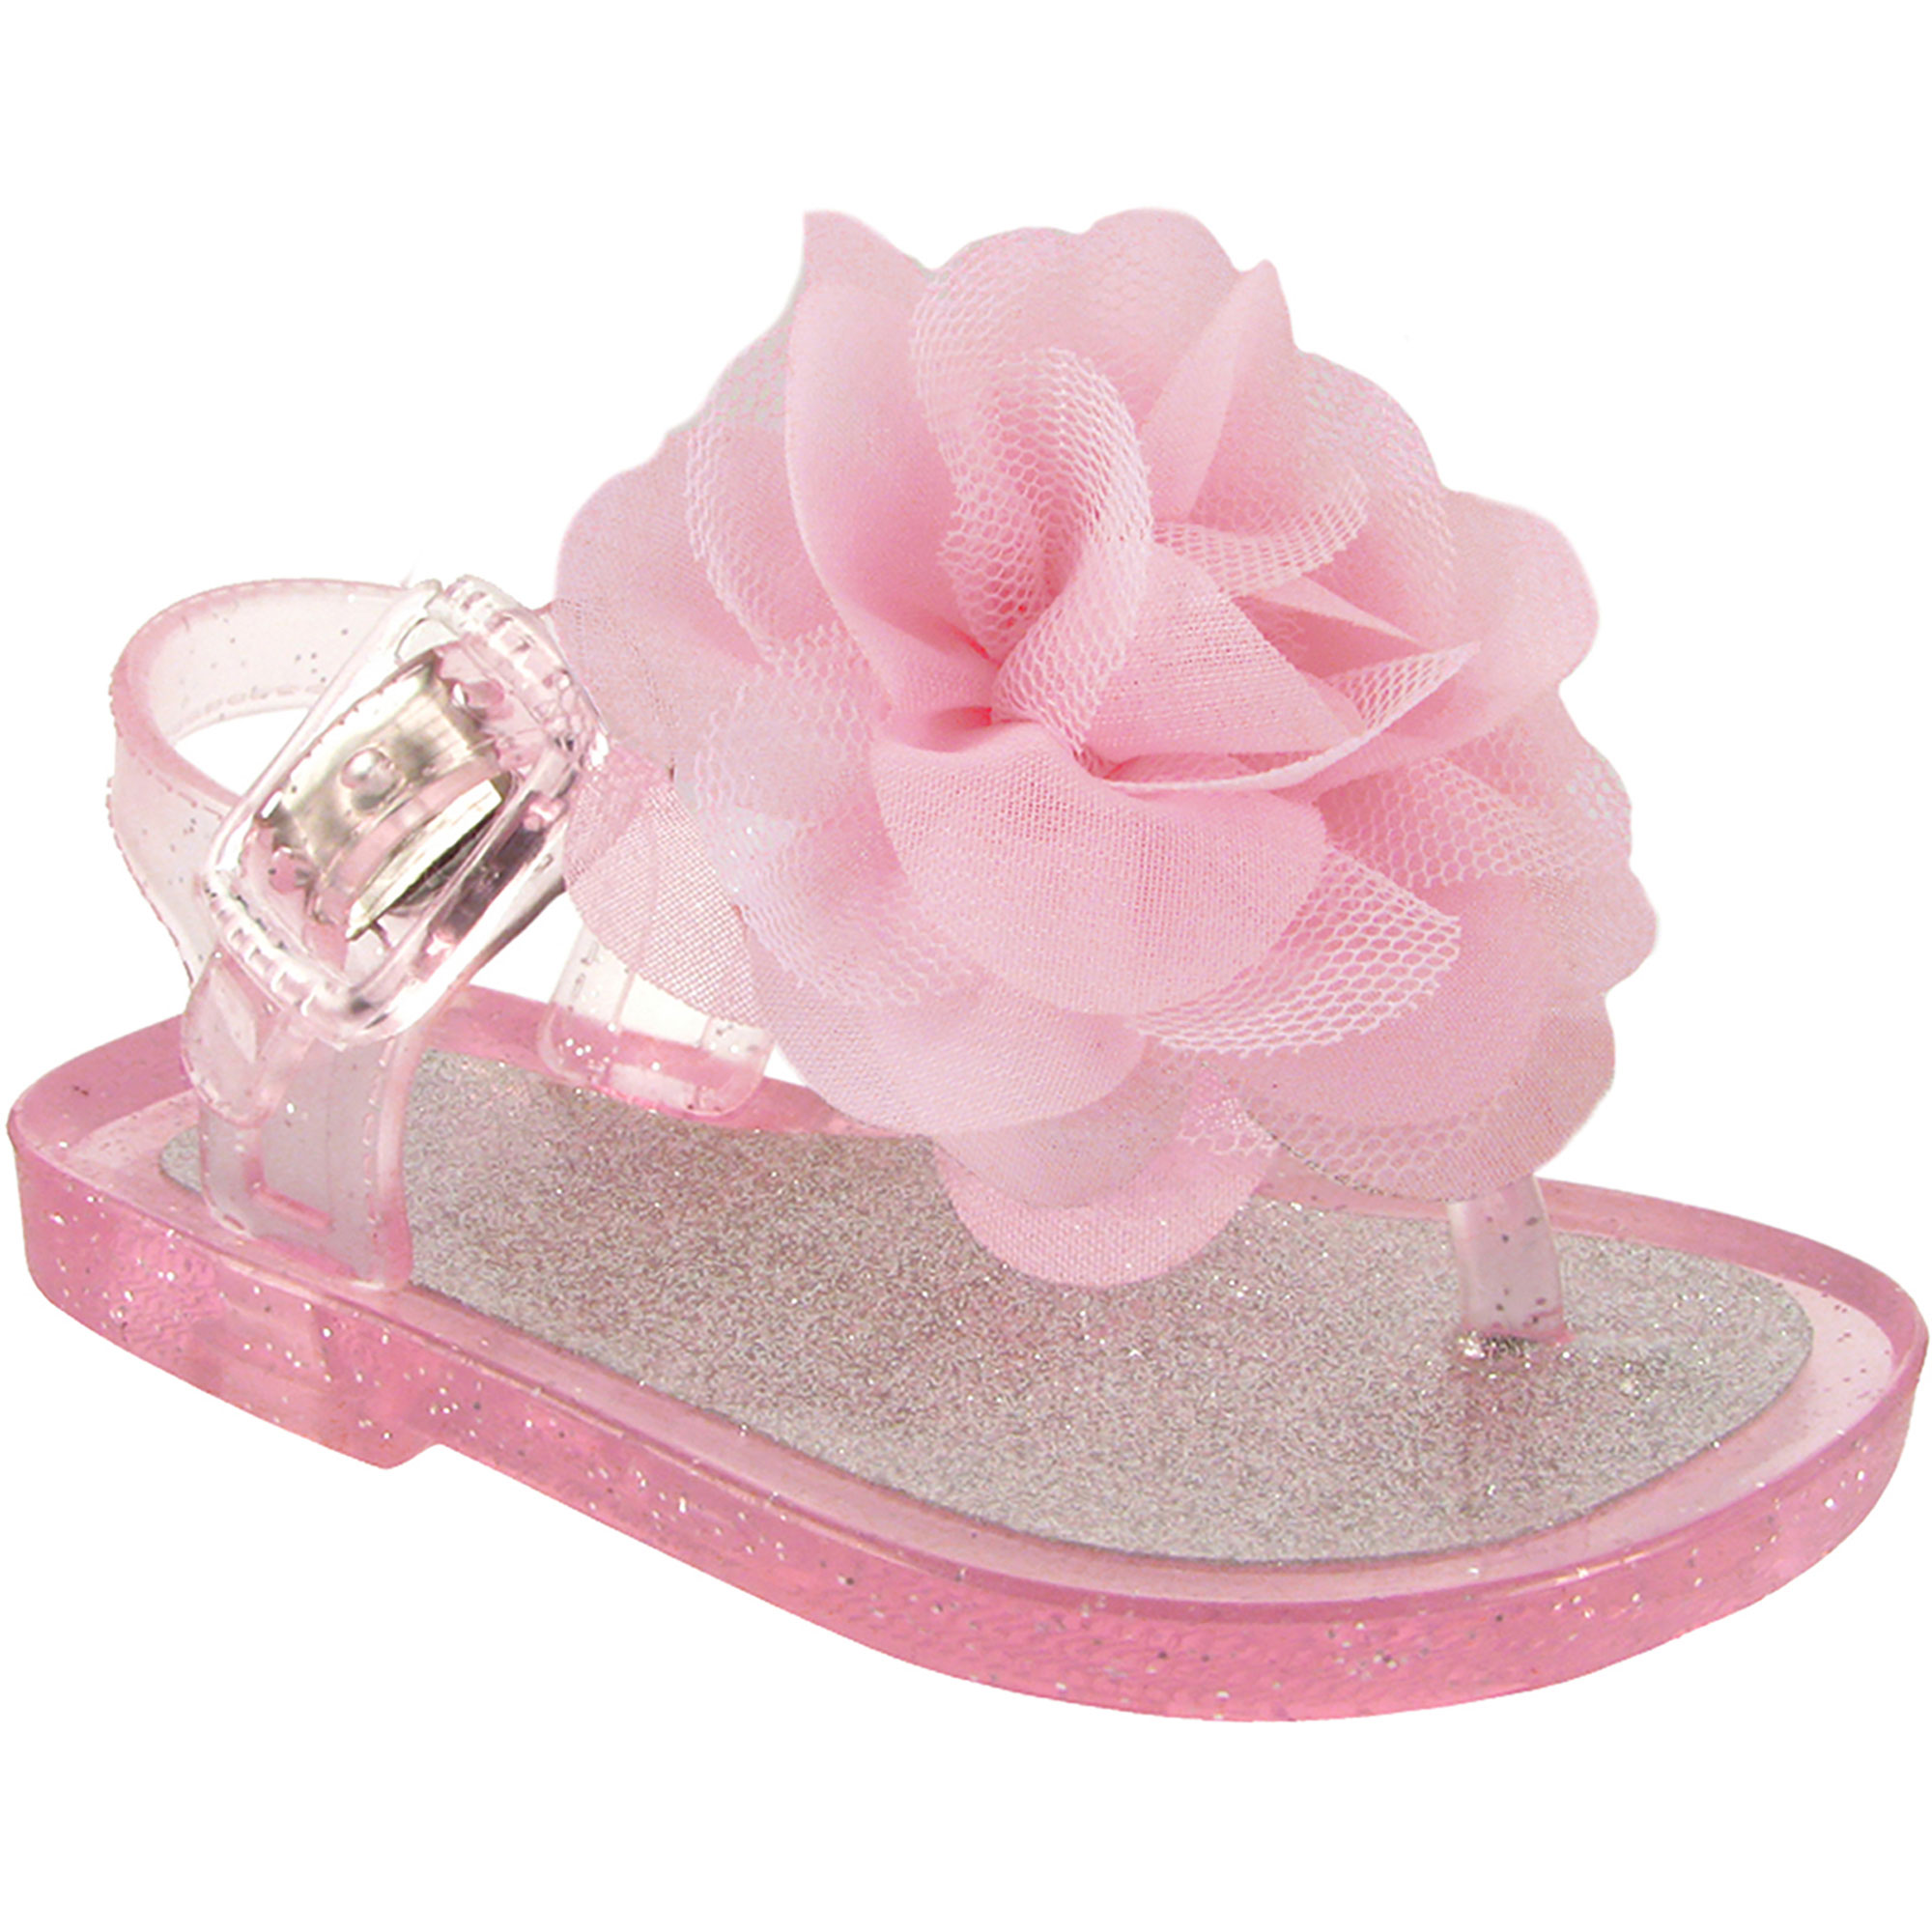 Wee Kids Baby-Girls Sandals Jelly Shoes (Baby Shoes) Girls Summer Sandals Lt. Pink Silver Sz 8